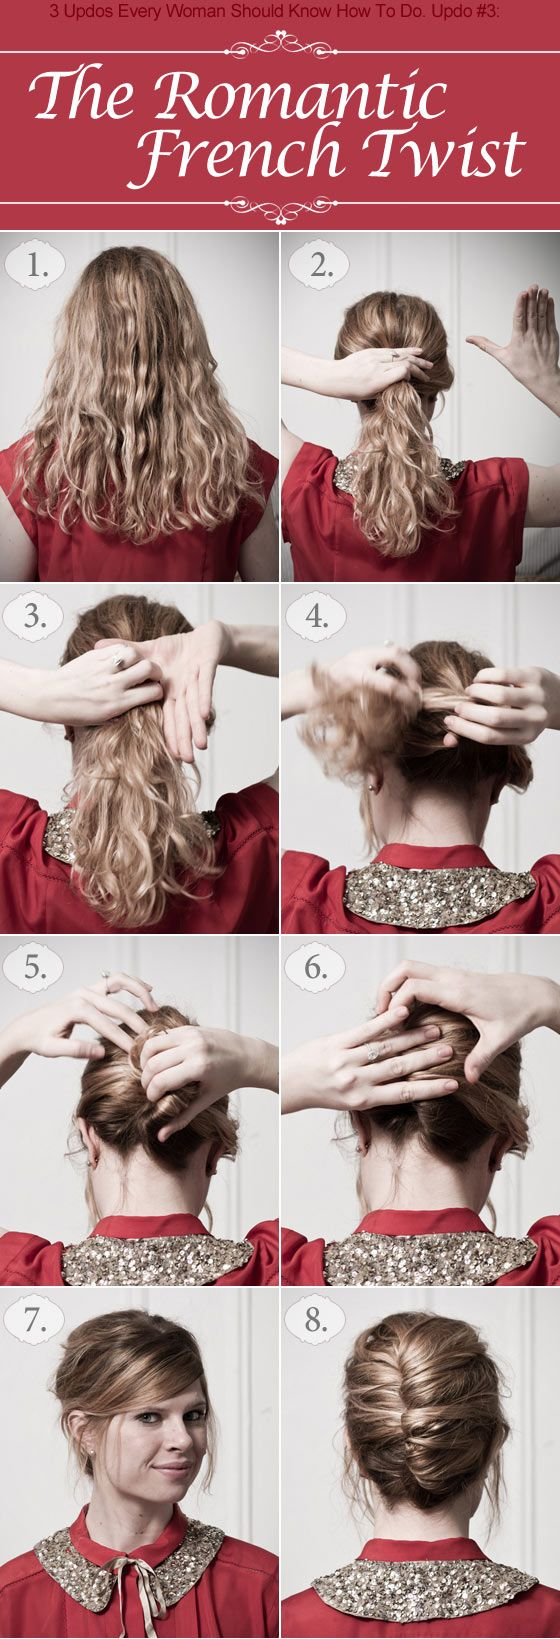 The best images about hair on pinterest french twist hairstyle